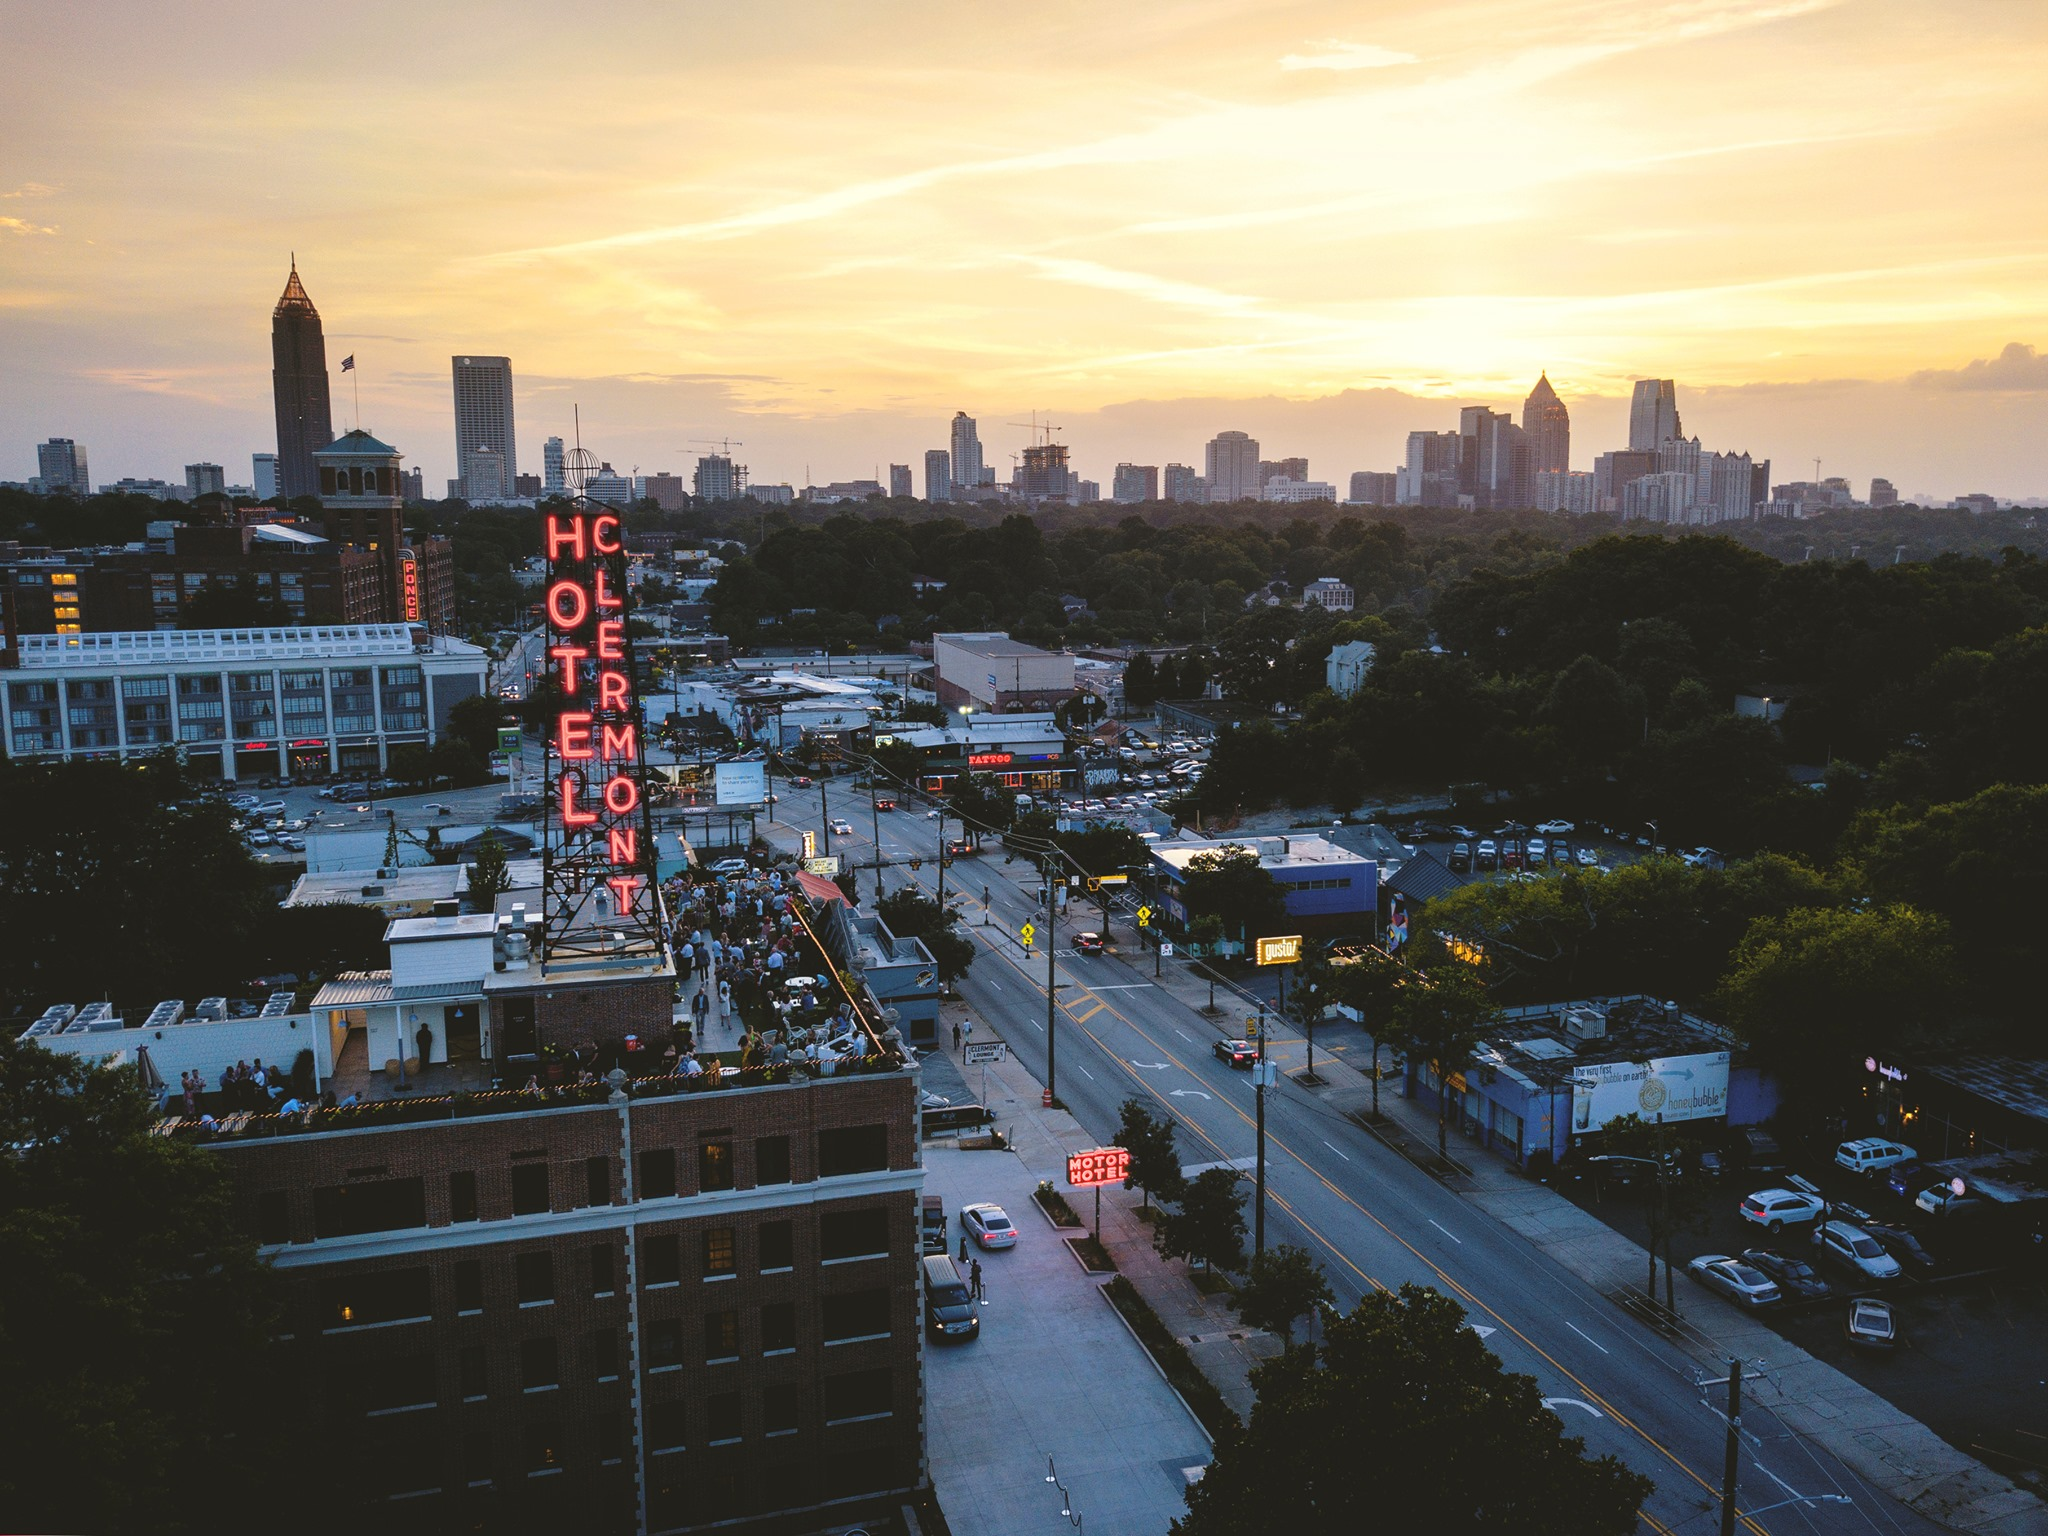 An aerial overlooking the rooftop filled with people at the bar of the Hotel Clermont on dusk with the Atlanta skyline backlit by the setting sun in the distance